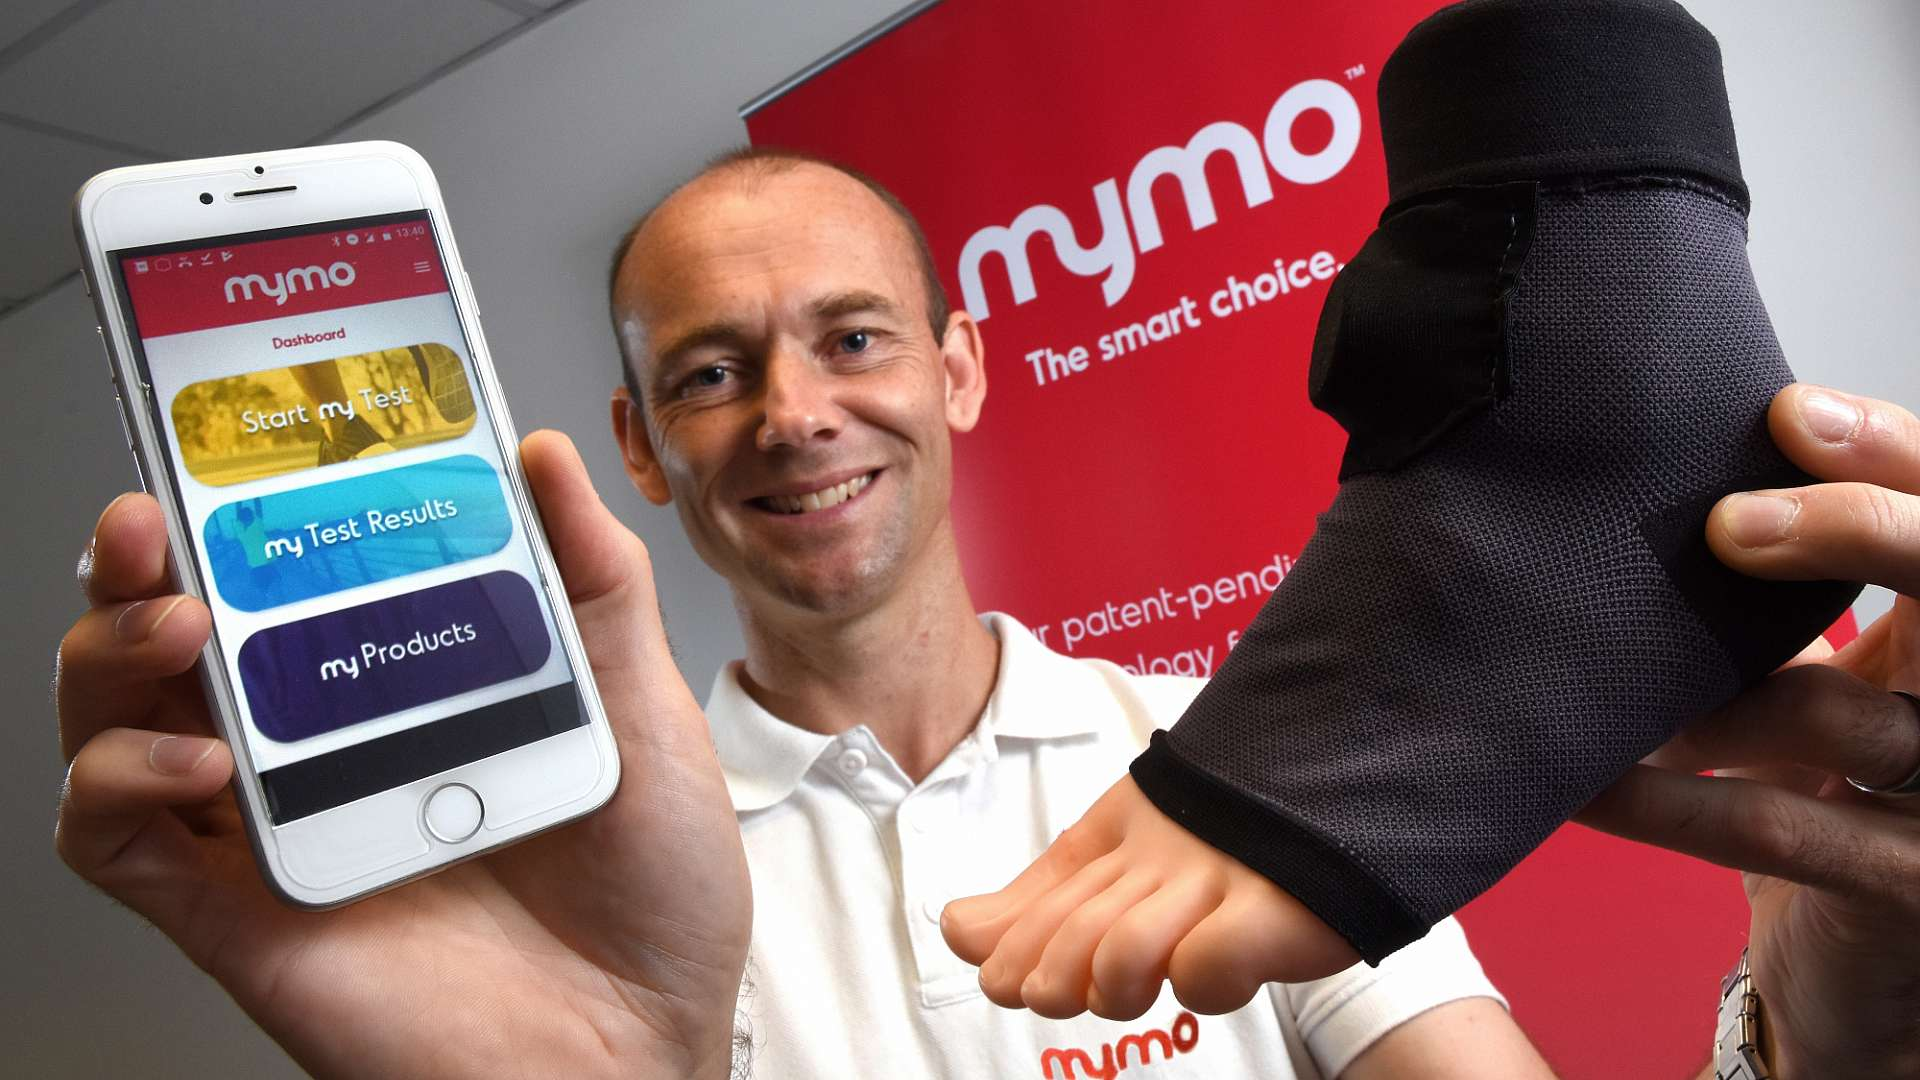 CPI supported Craig Downs and his mymo technology, which works as a wearable sock using artificial intelligence to gauge an athlete's gait